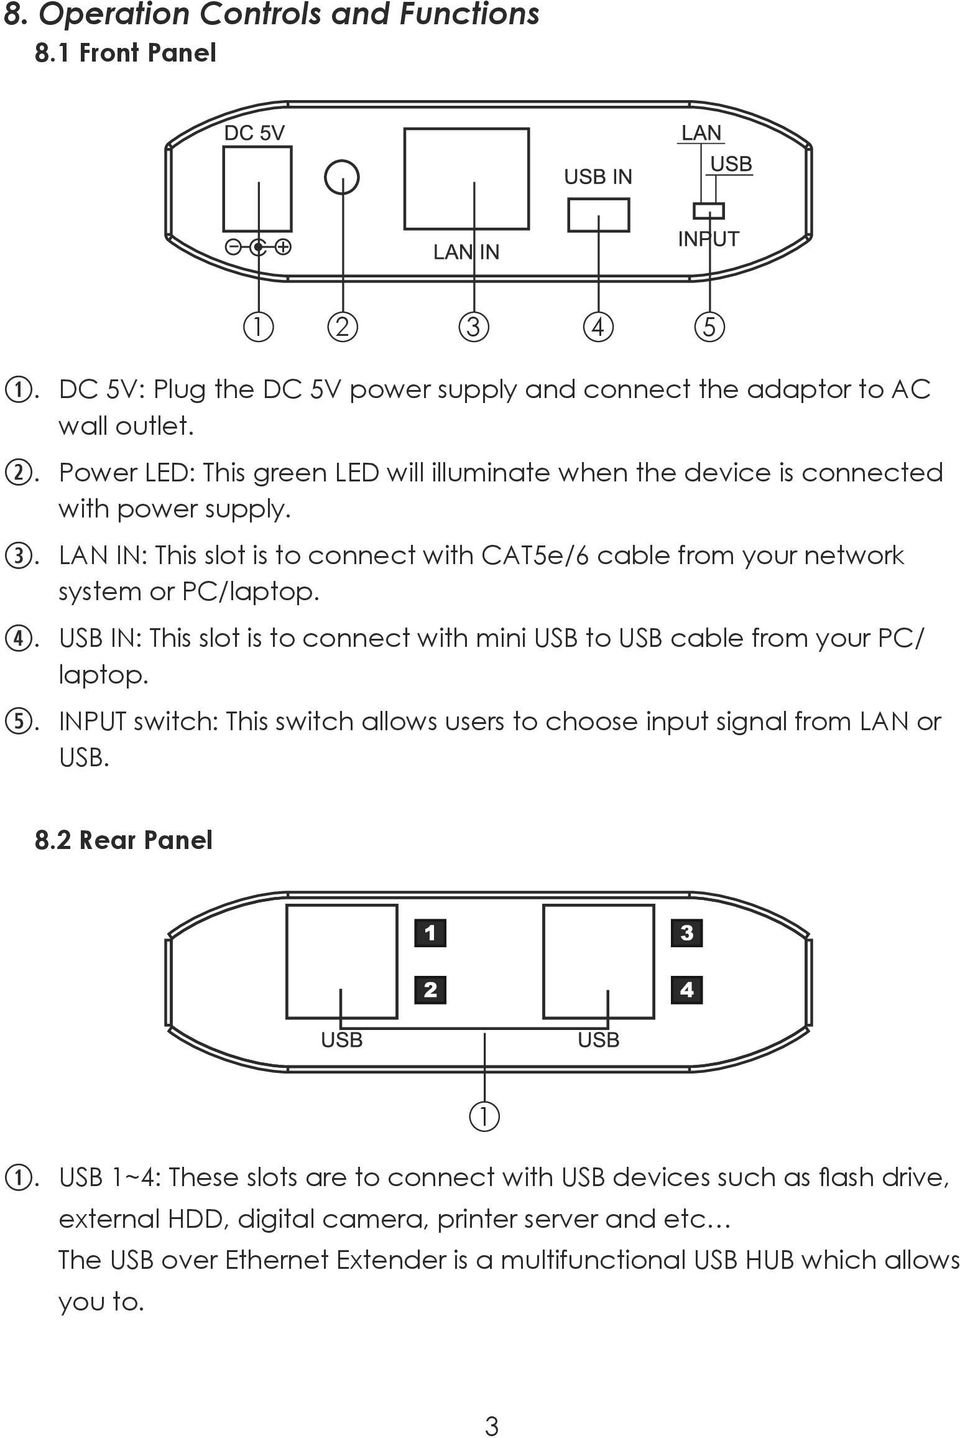 LAN IN: This slot is to connect with CAT5e/6 cable from your network system or PC/laptop. 4. USB IN: This slot is to connect with mini USB to USB cable from your PC/ laptop. 5.